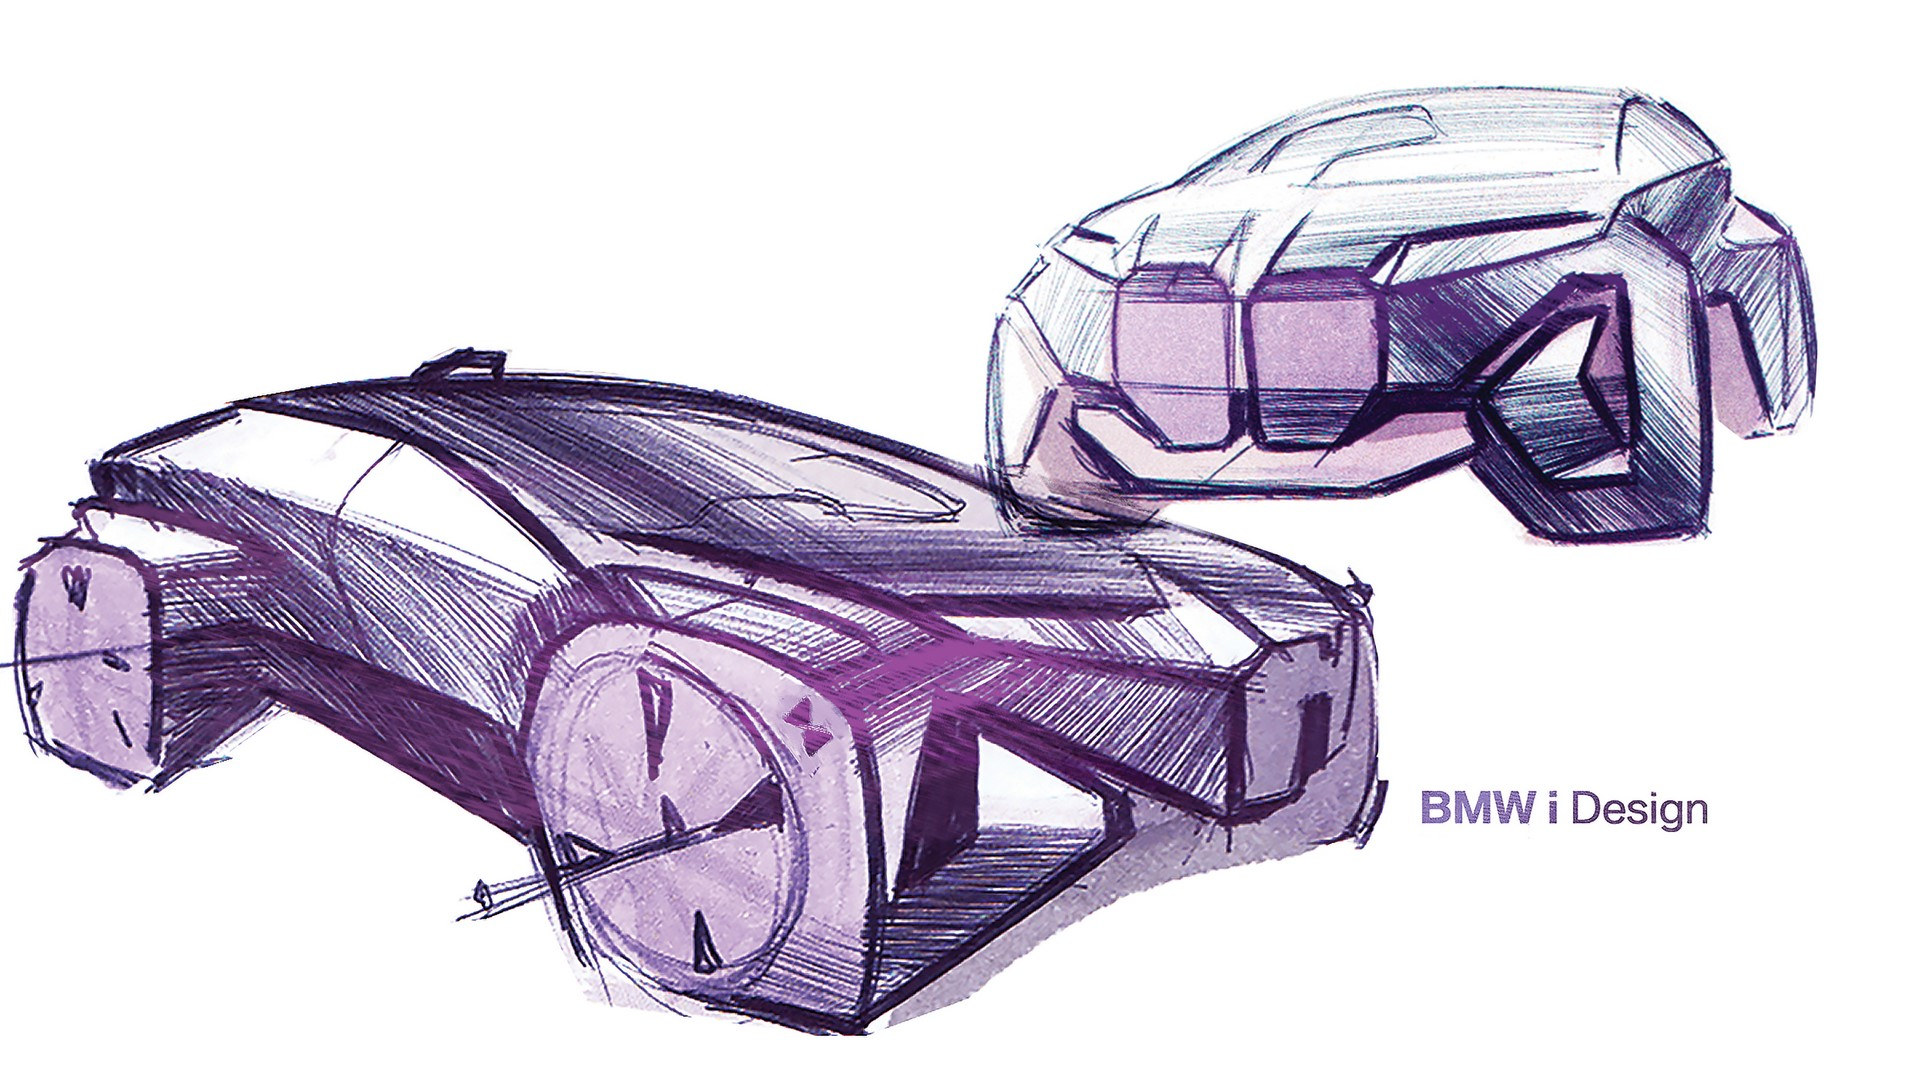 BMW Vision iNext Concept (103)